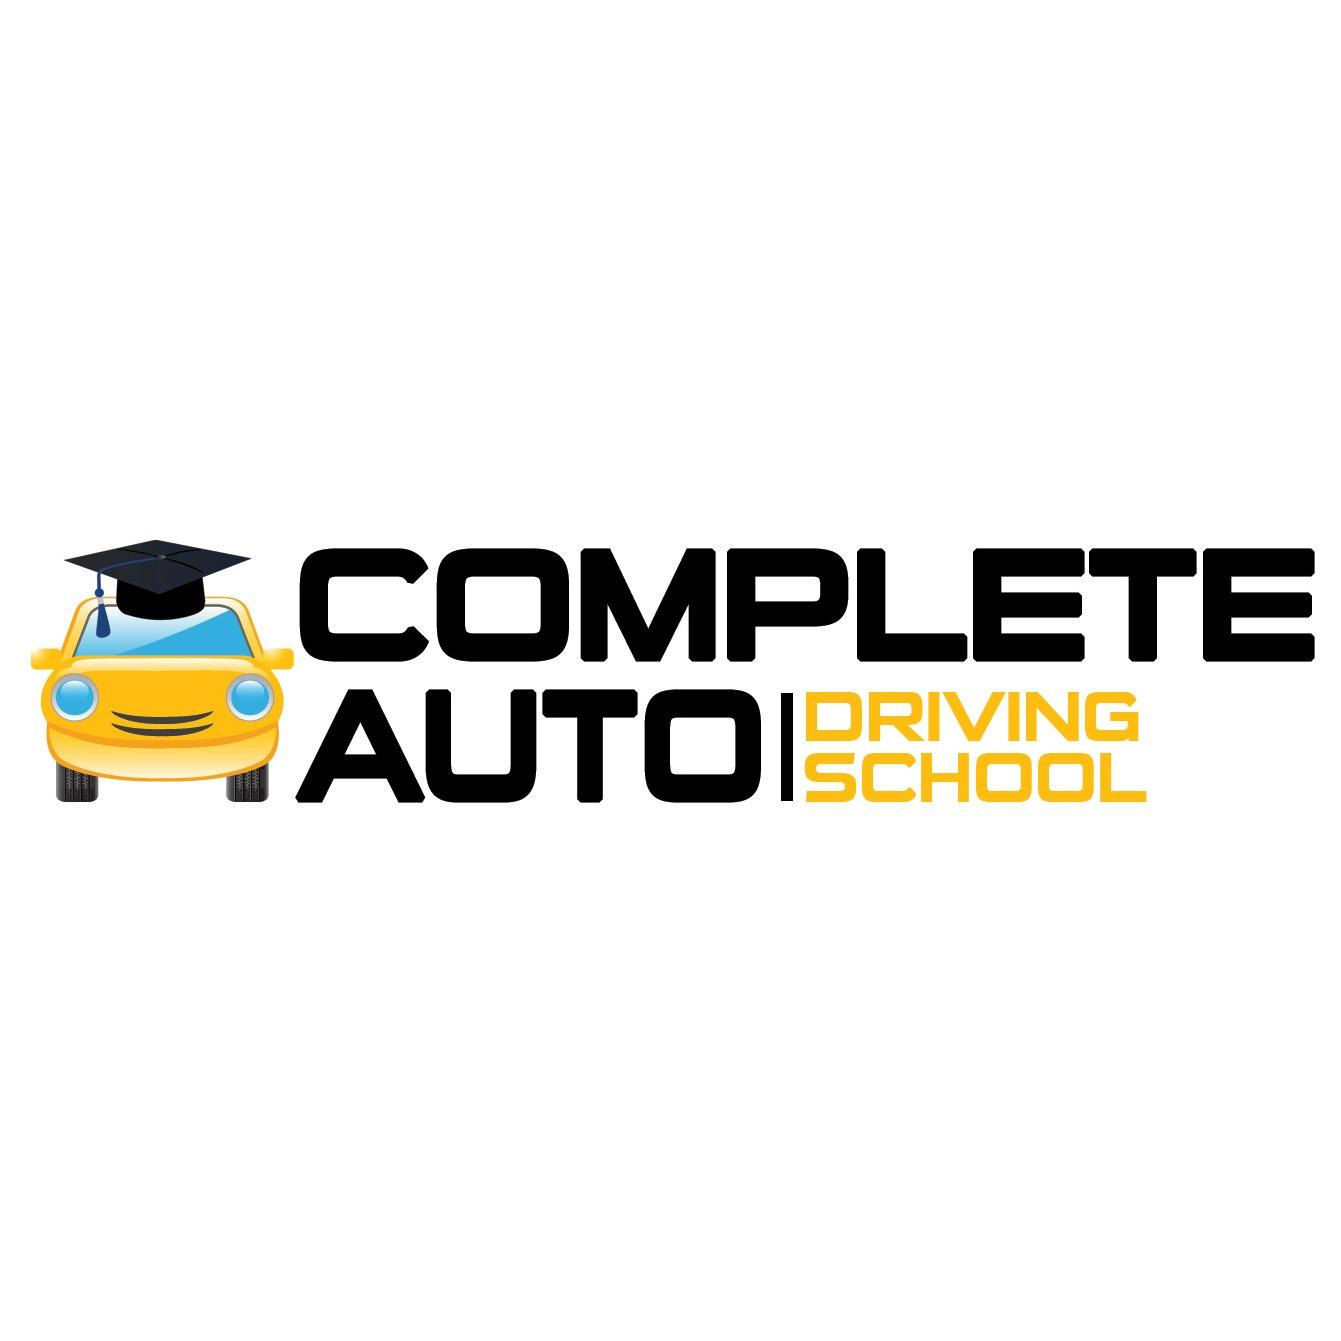 Complete Auto Driving School - Warminster, PA 18974 - (215)558-0554 | ShowMeLocal.com